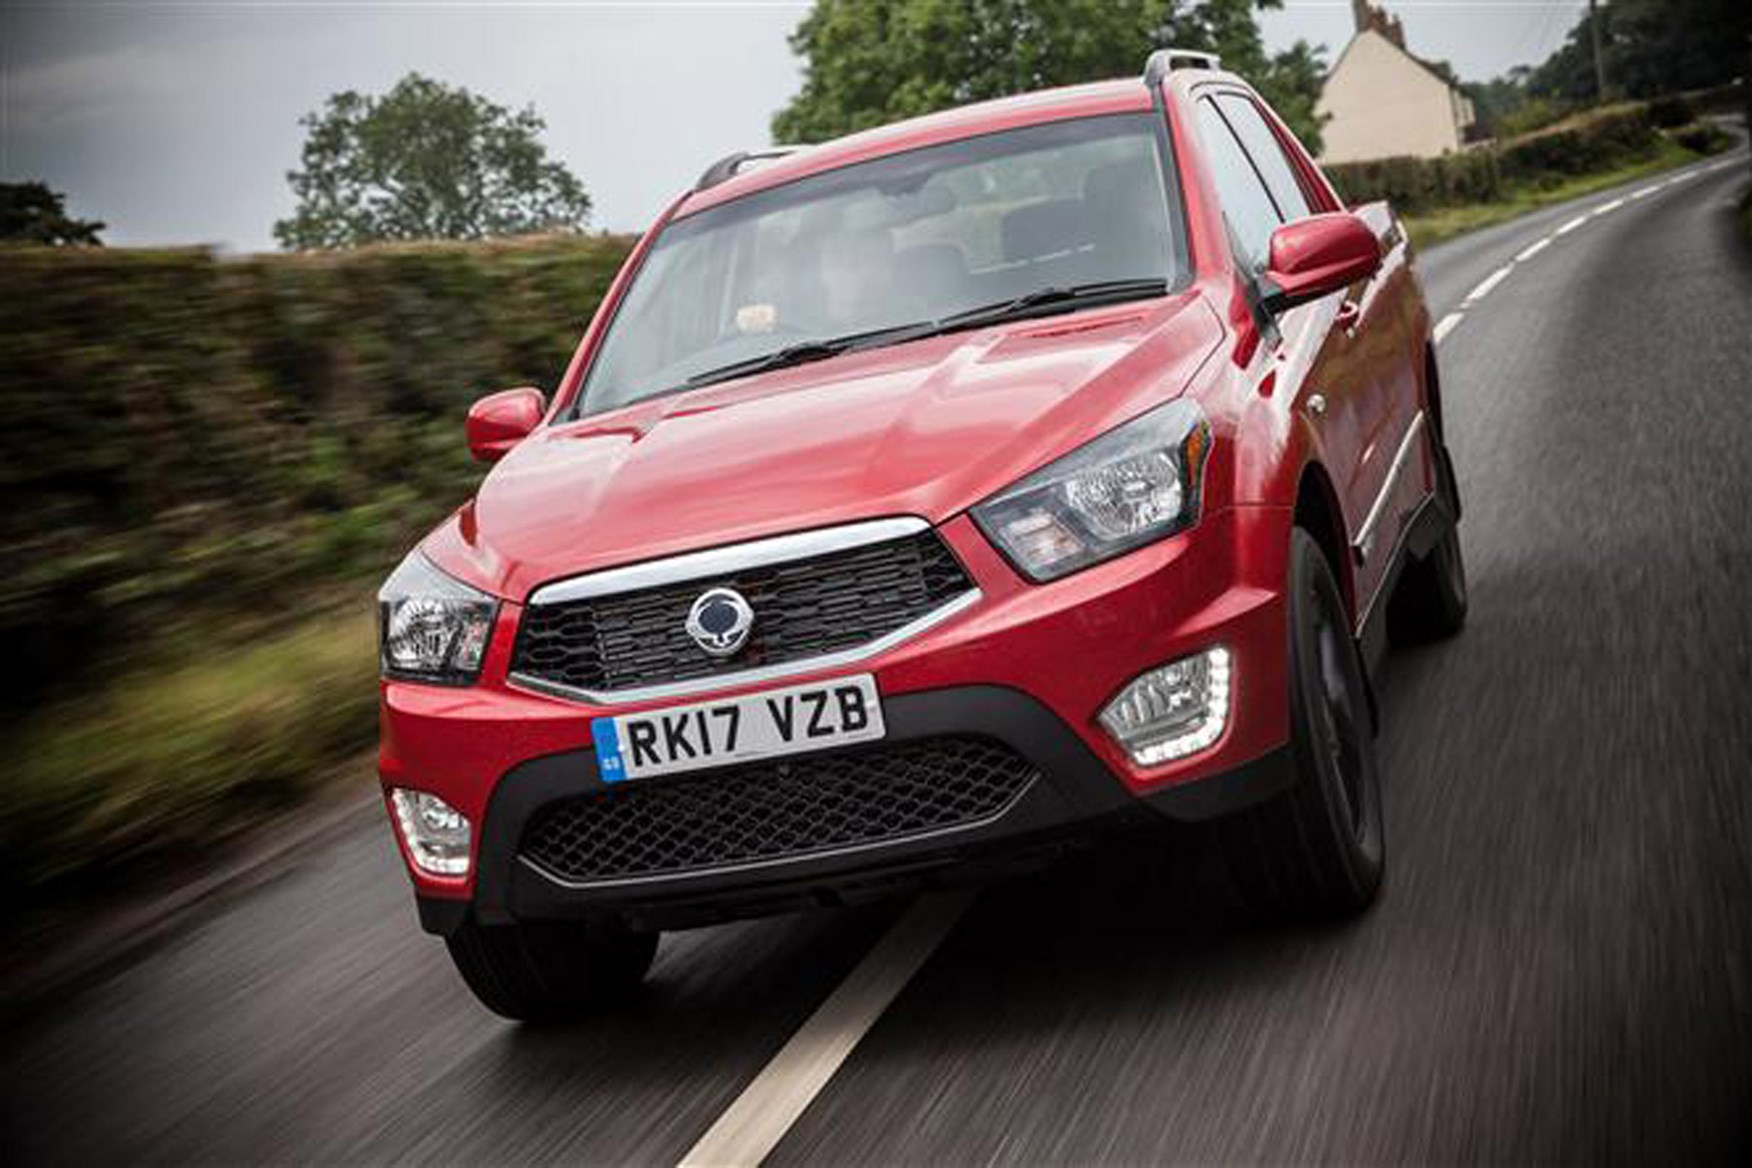 SsangYong Musso full review on Parkers Vans - on the road